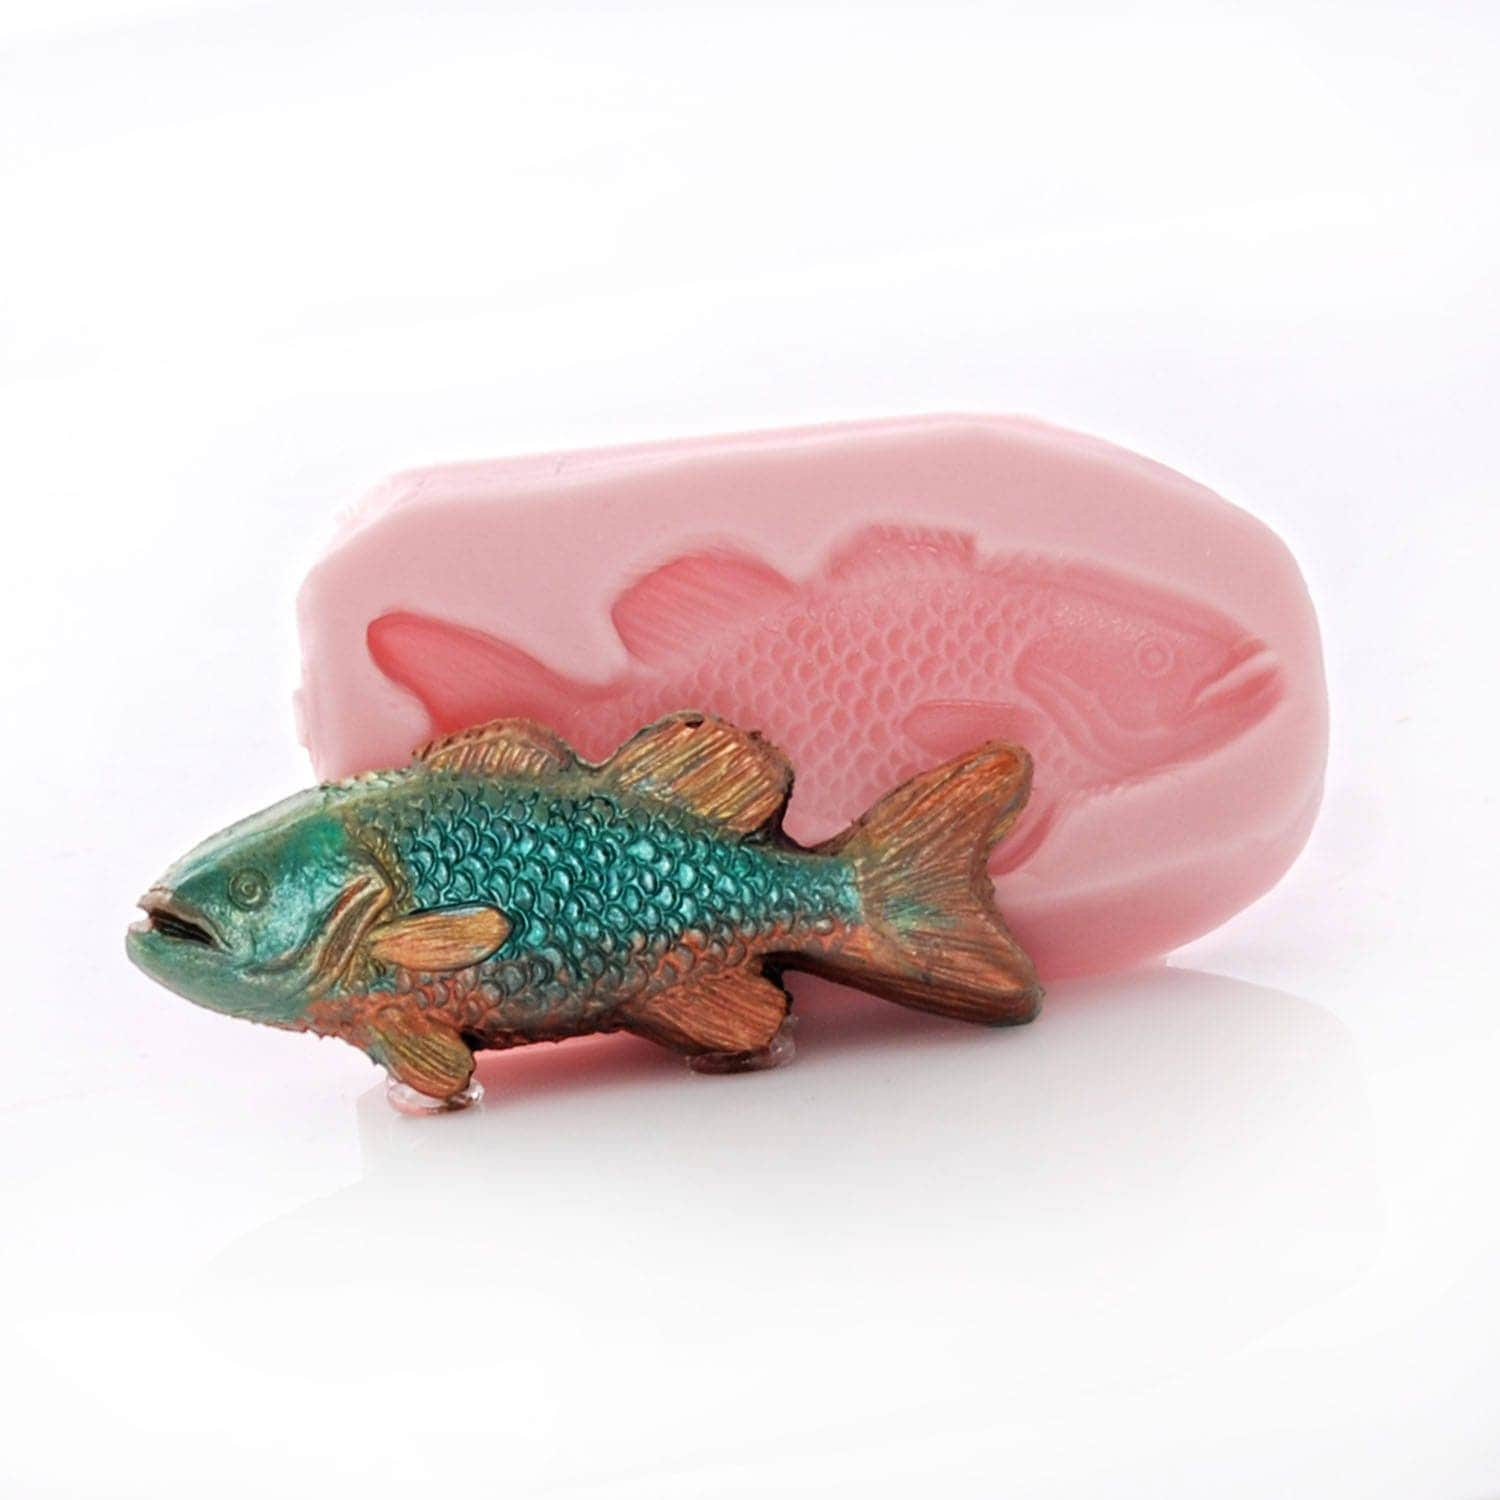 Silicone fish mold food safe fondant chocolate candy gum for Silicone fish molds